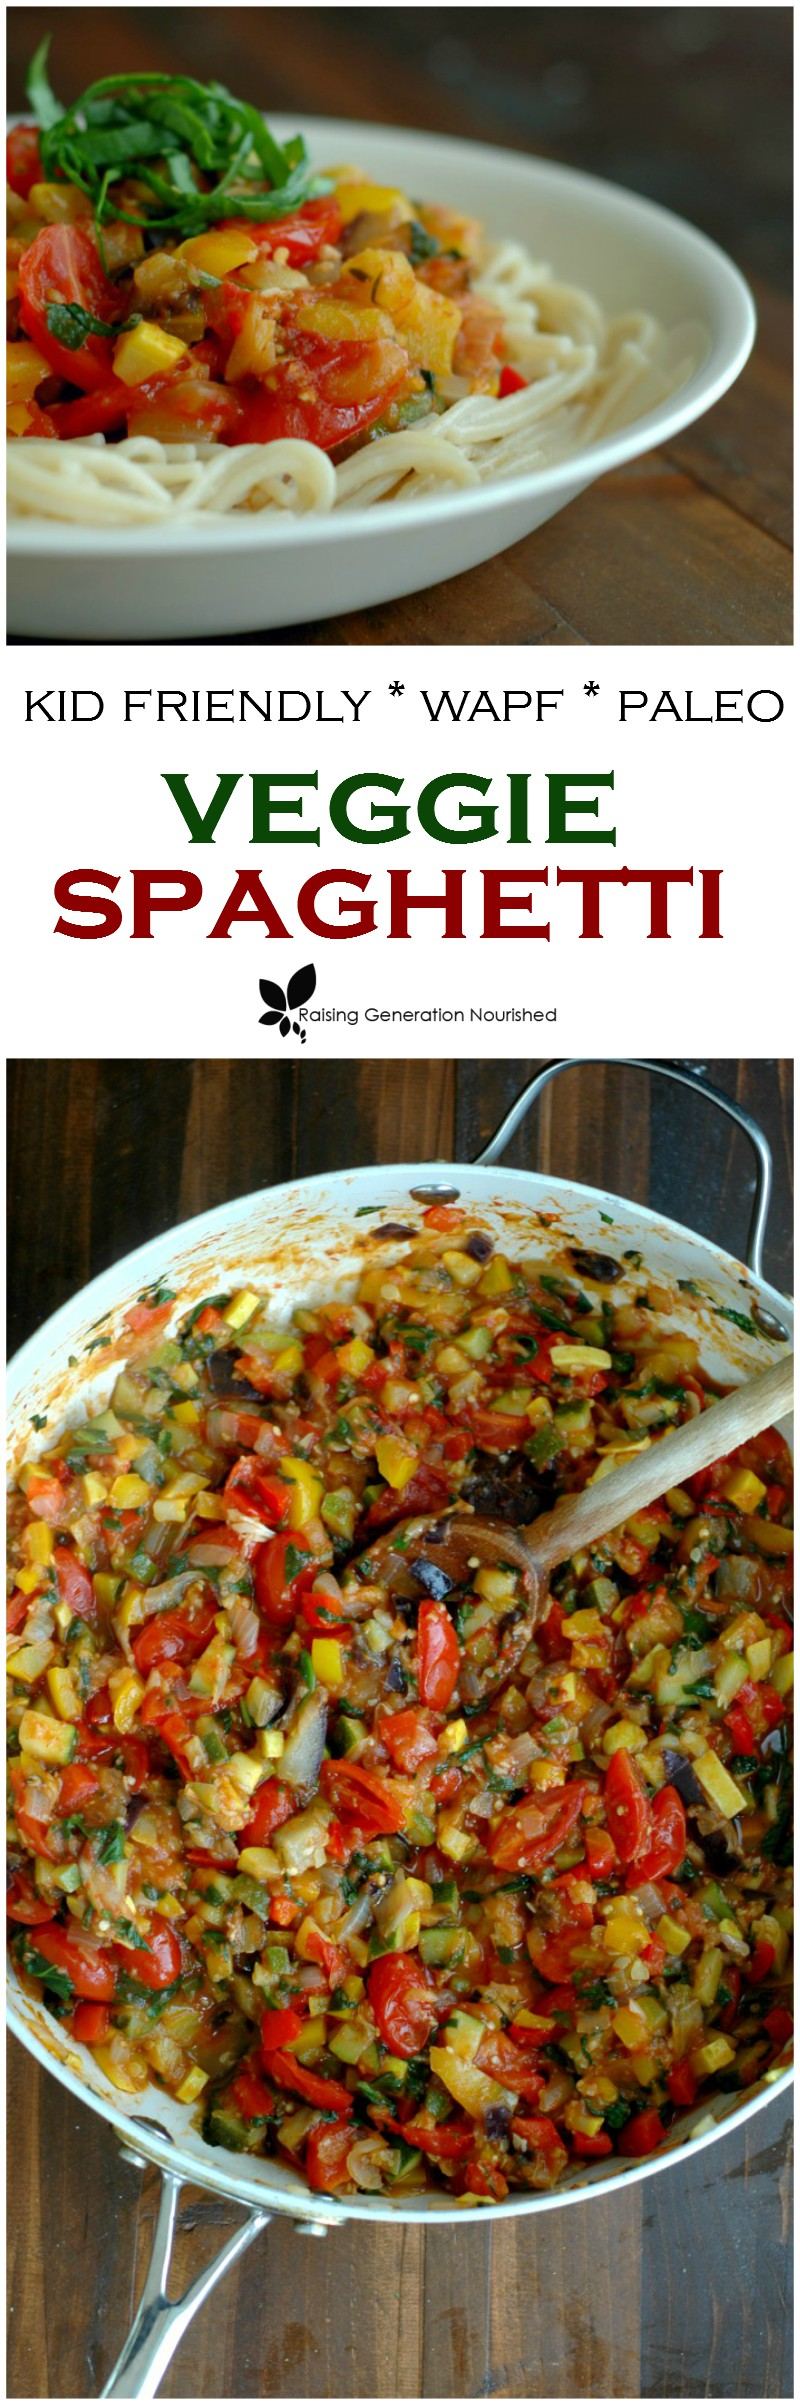 Kid Friendly Veggie Spaghetti Sauce! :: This kid friendly veggie spaghetti sauce is loaded with brilliant color, amazing taste, and is super fun to eat piled on top of your favorite noodles or veggie noodles!